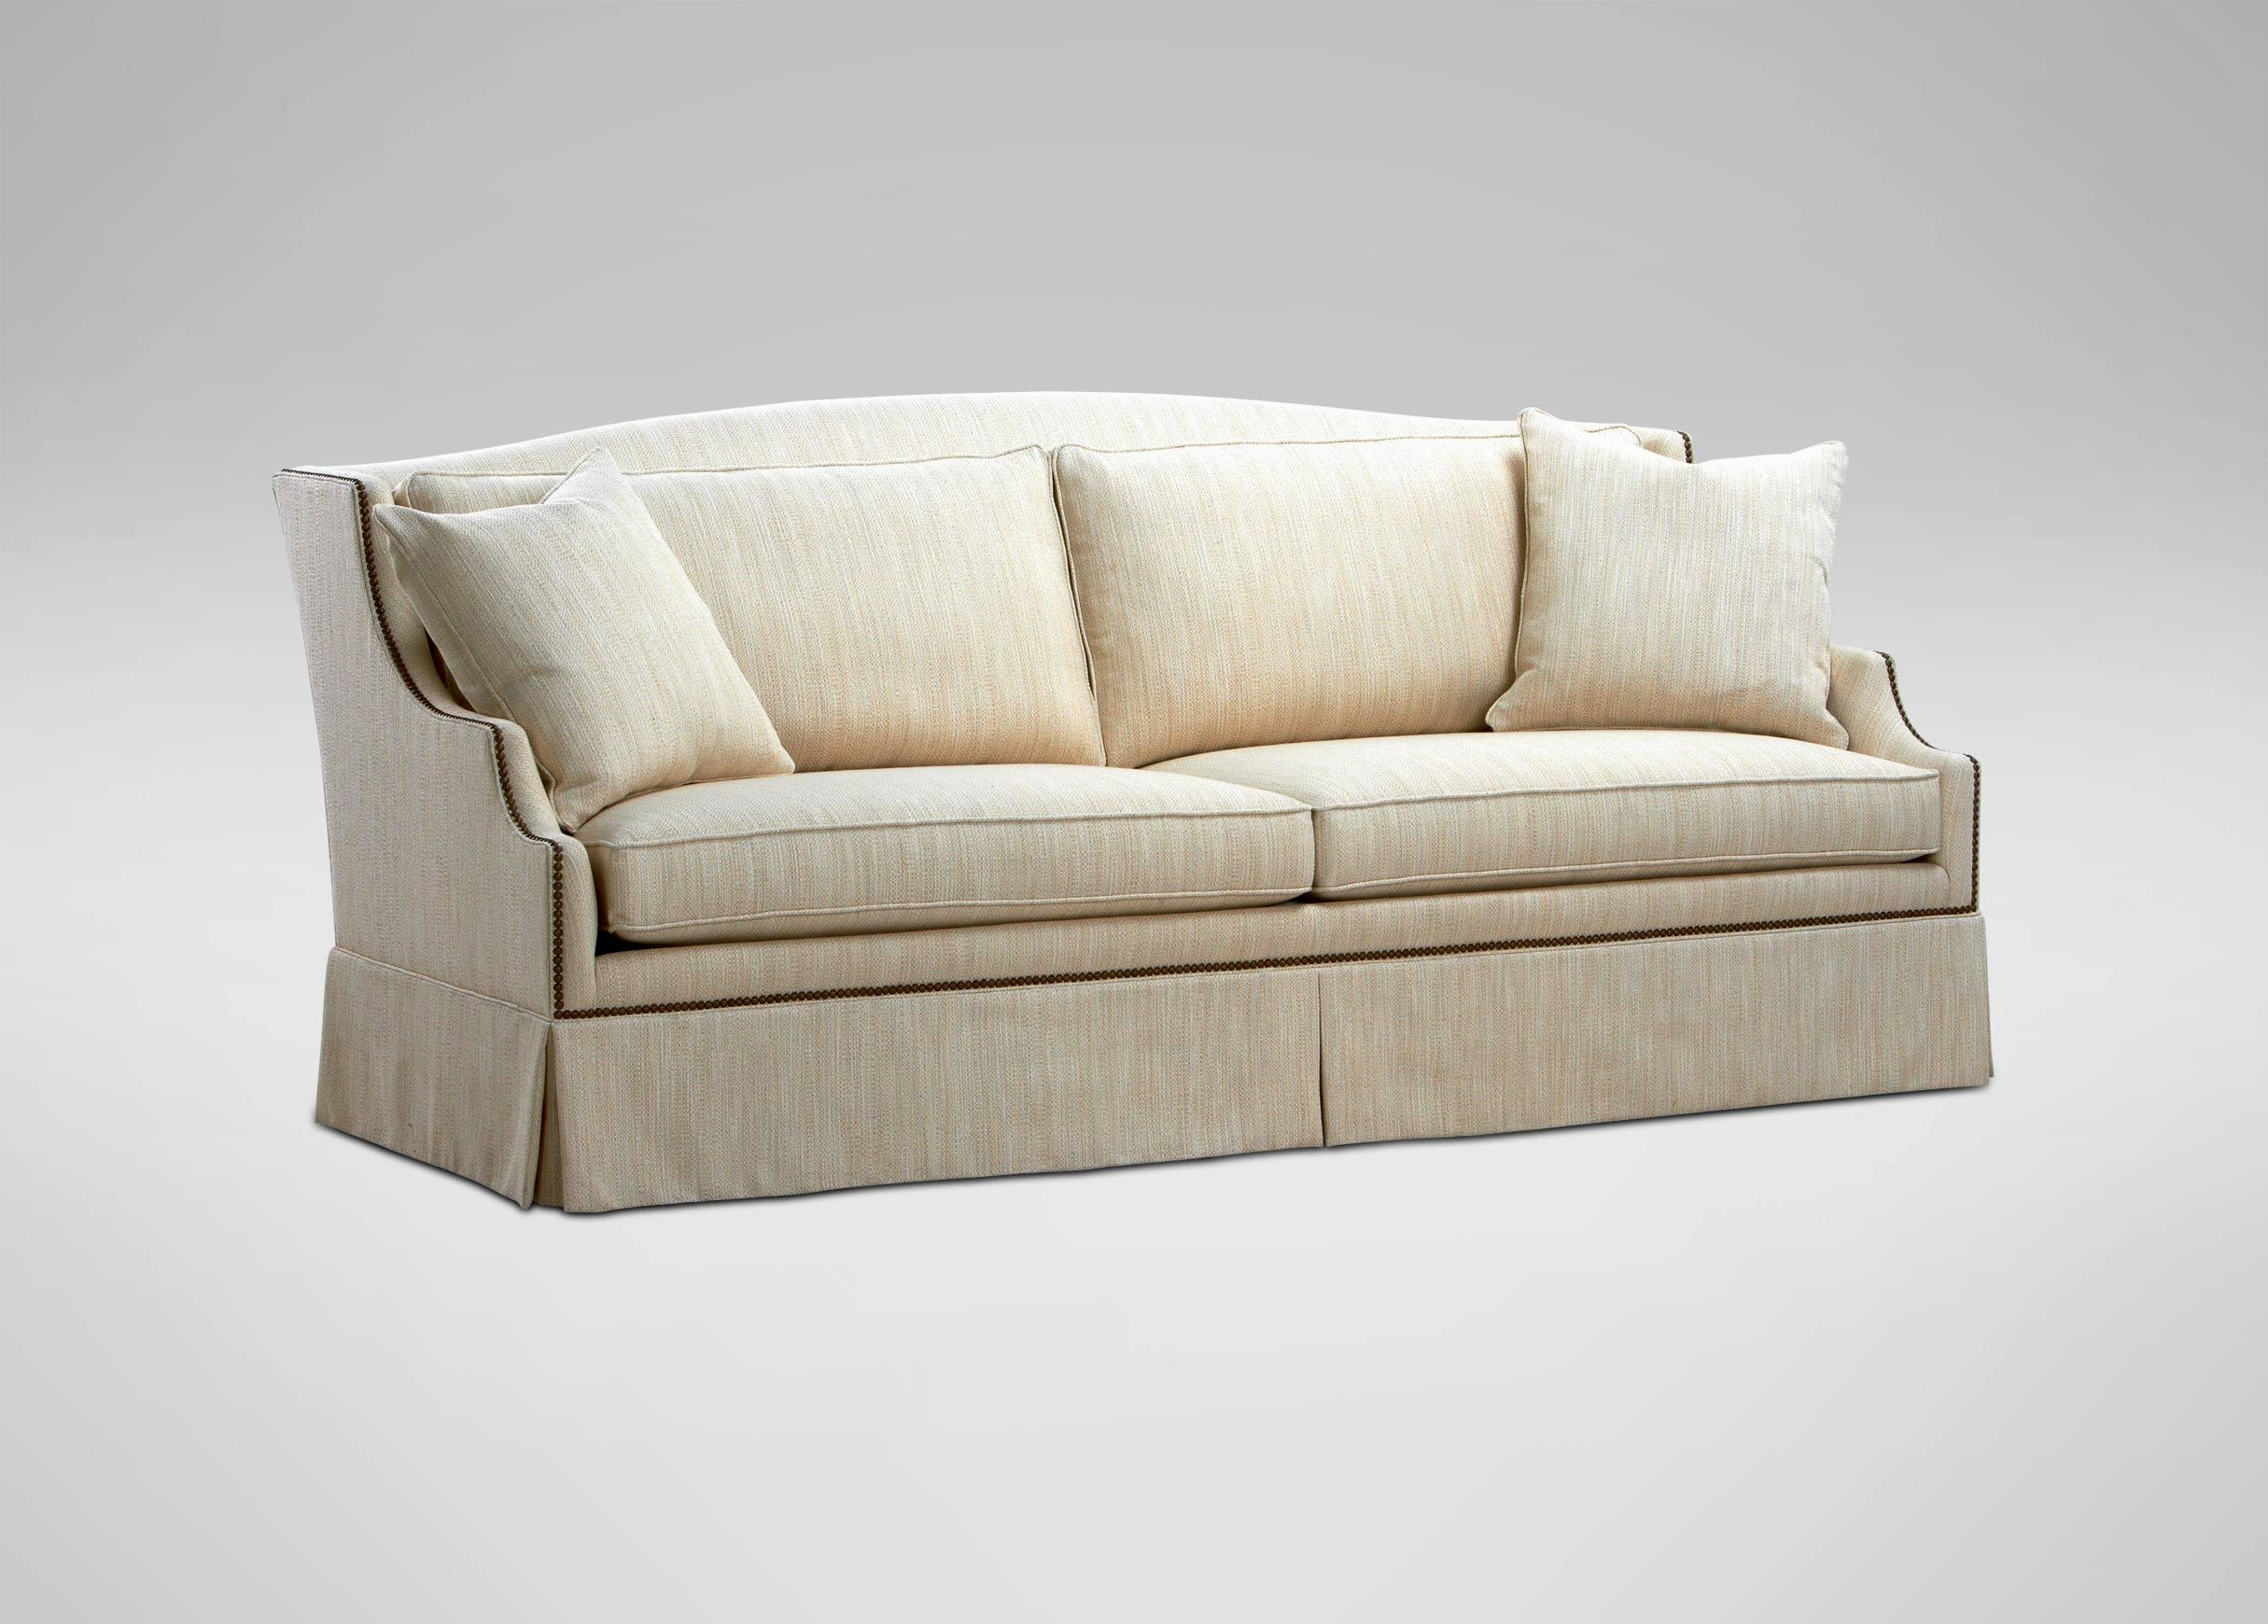 excellent flexsteel leather sofa picture-Fantastic Flexsteel Leather sofa Architecture